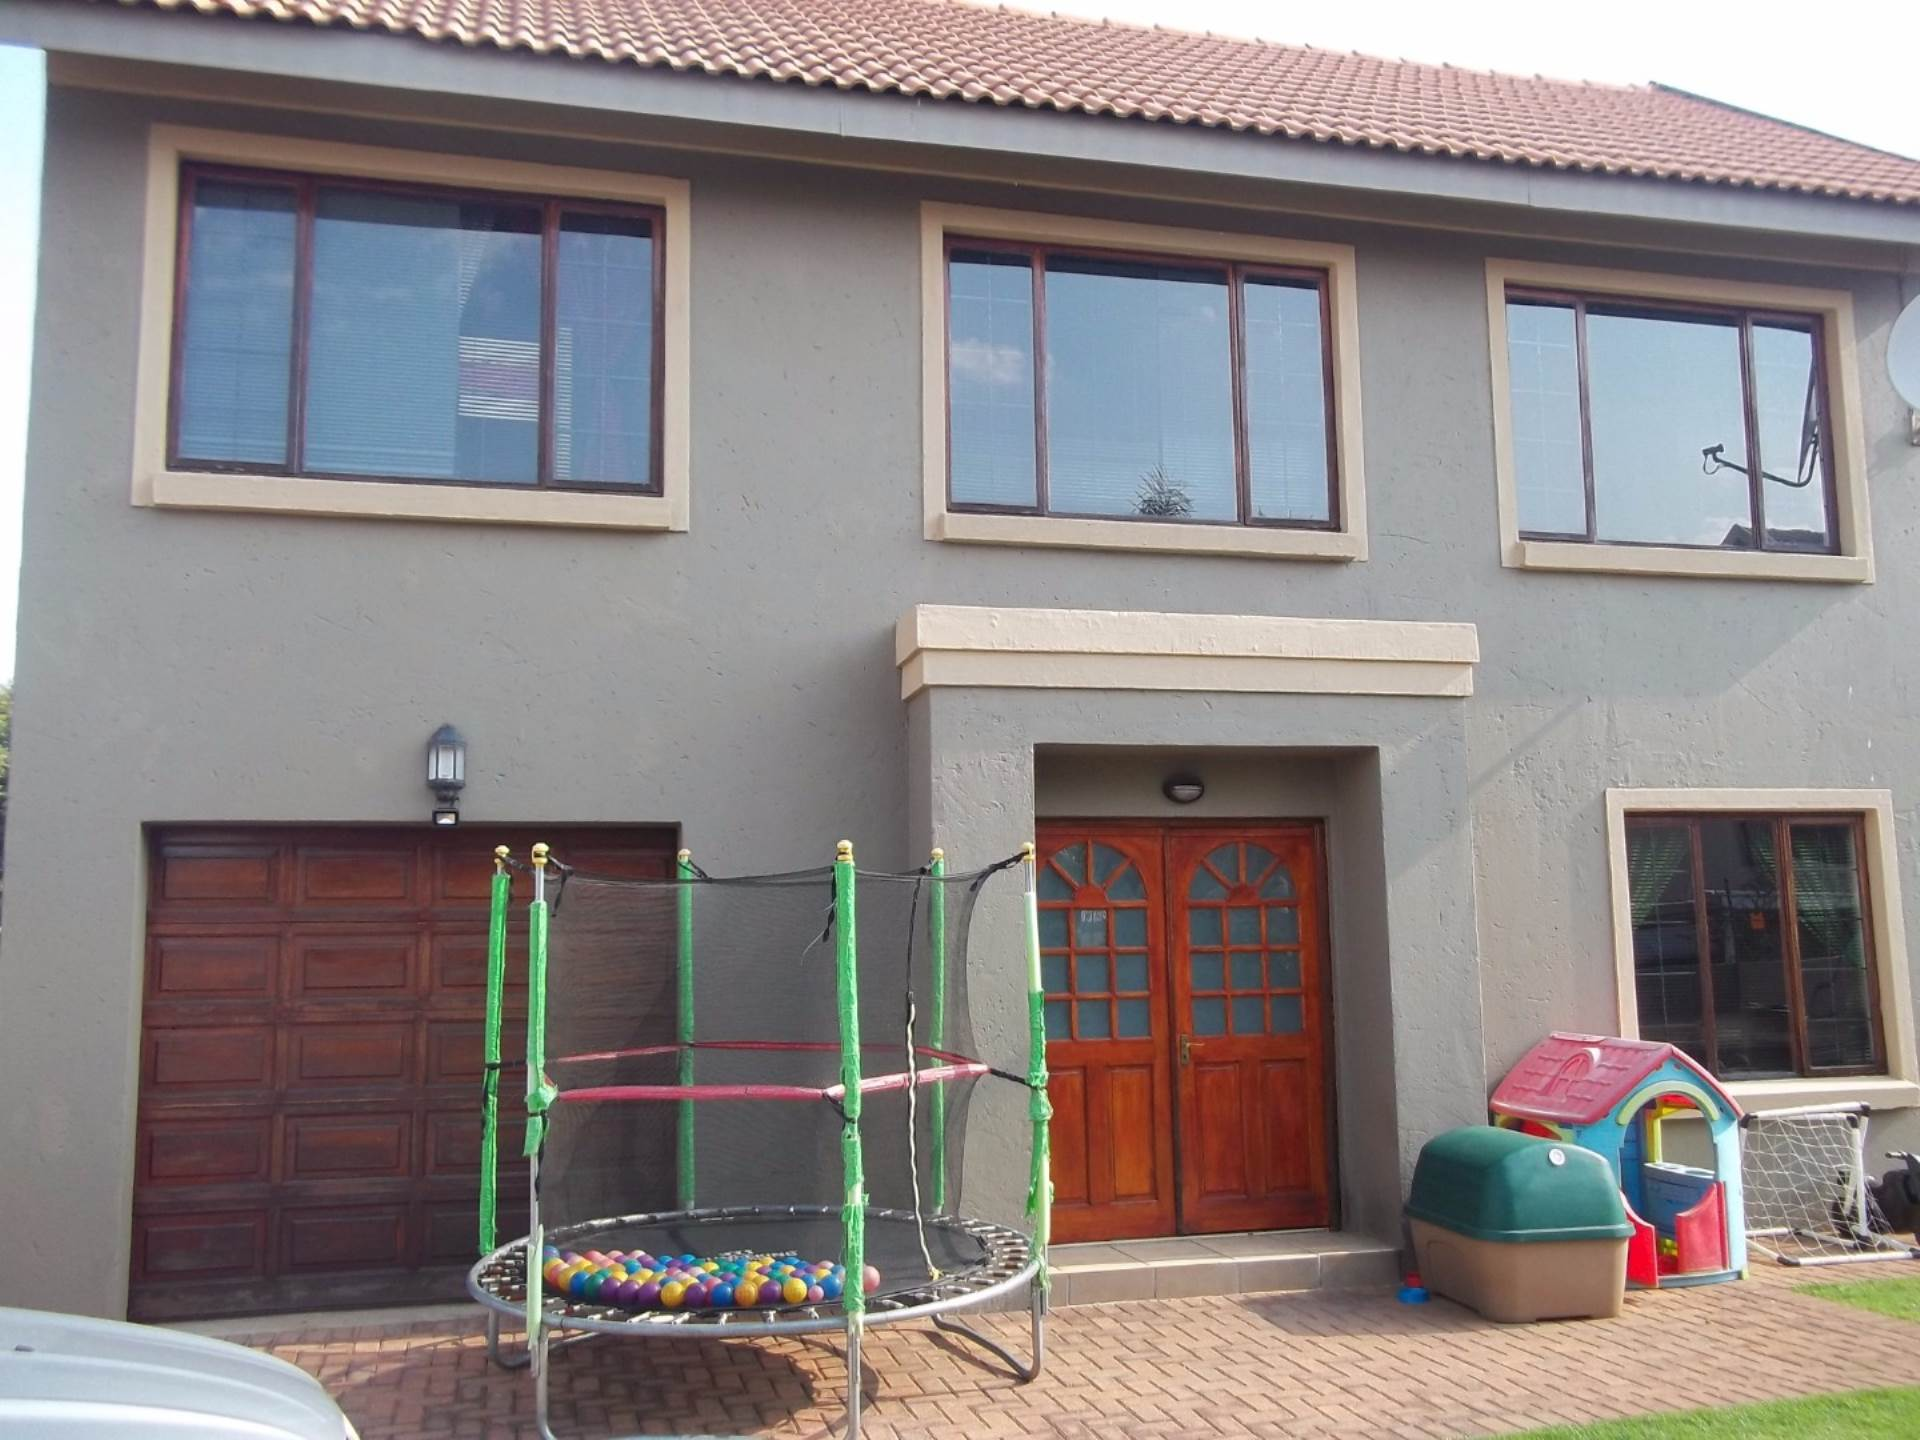 3 BedroomCluster For Sale In Dalview